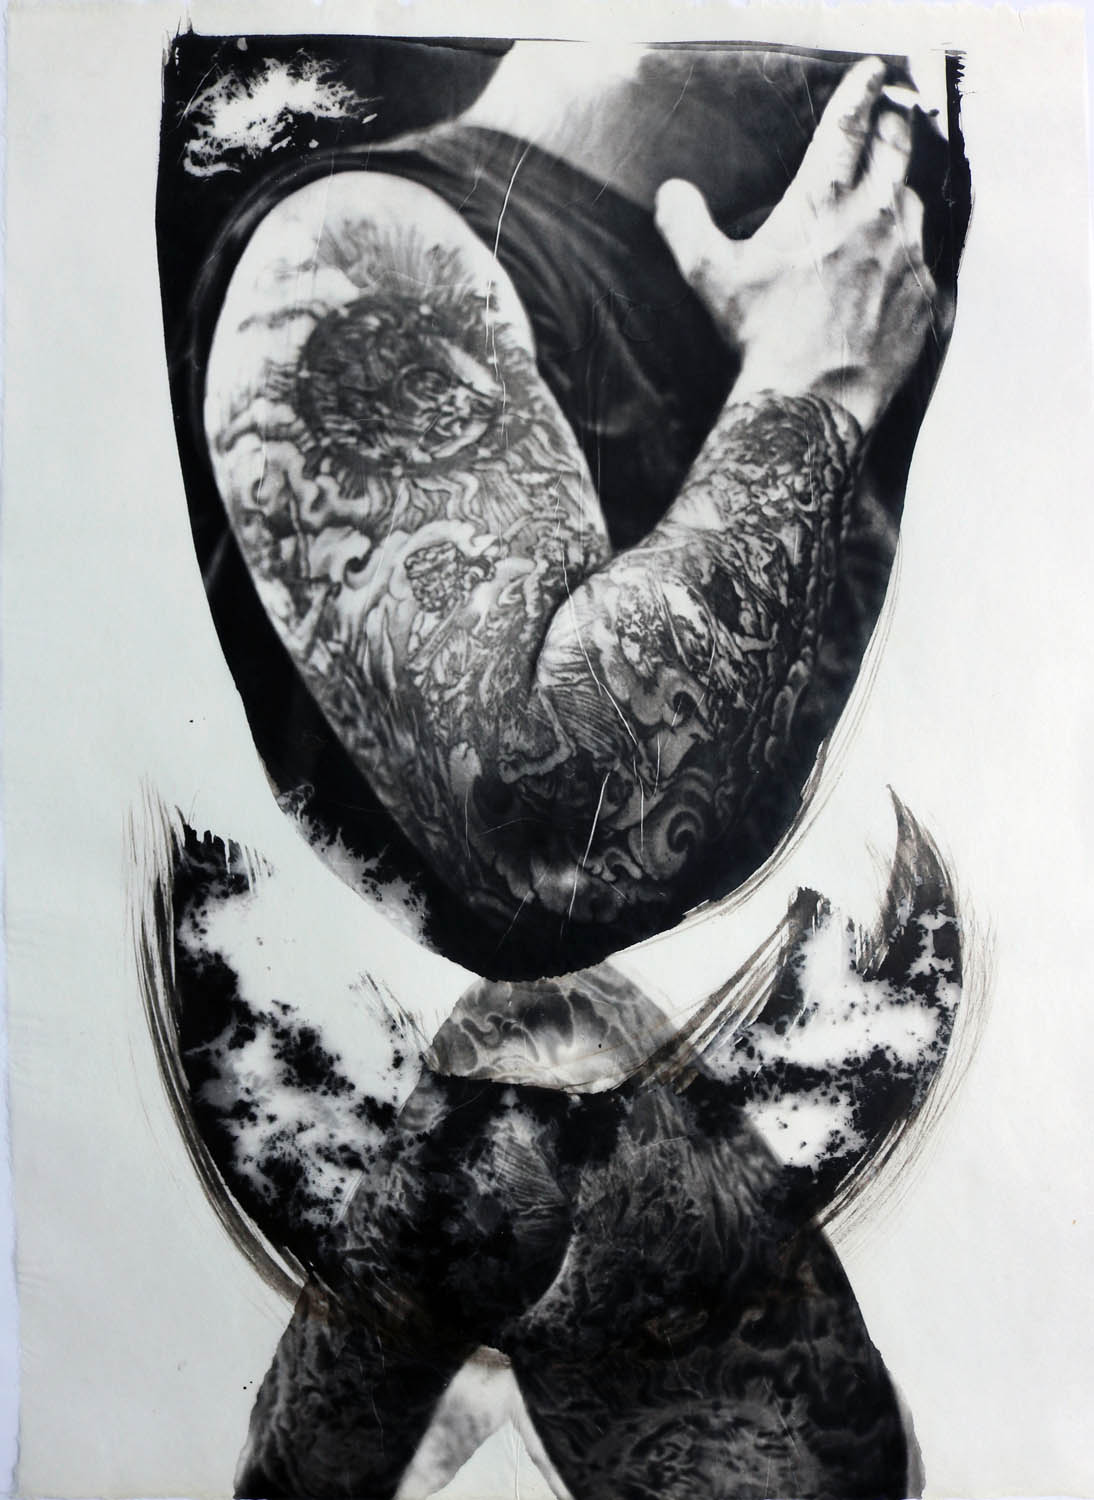 A man who has tattoos derived from Durer's woodcuts of the Apocalypse. His arm is reflected below interrupted by shapes that symbolize the Covid-19 virus that was pandemic worldwide.